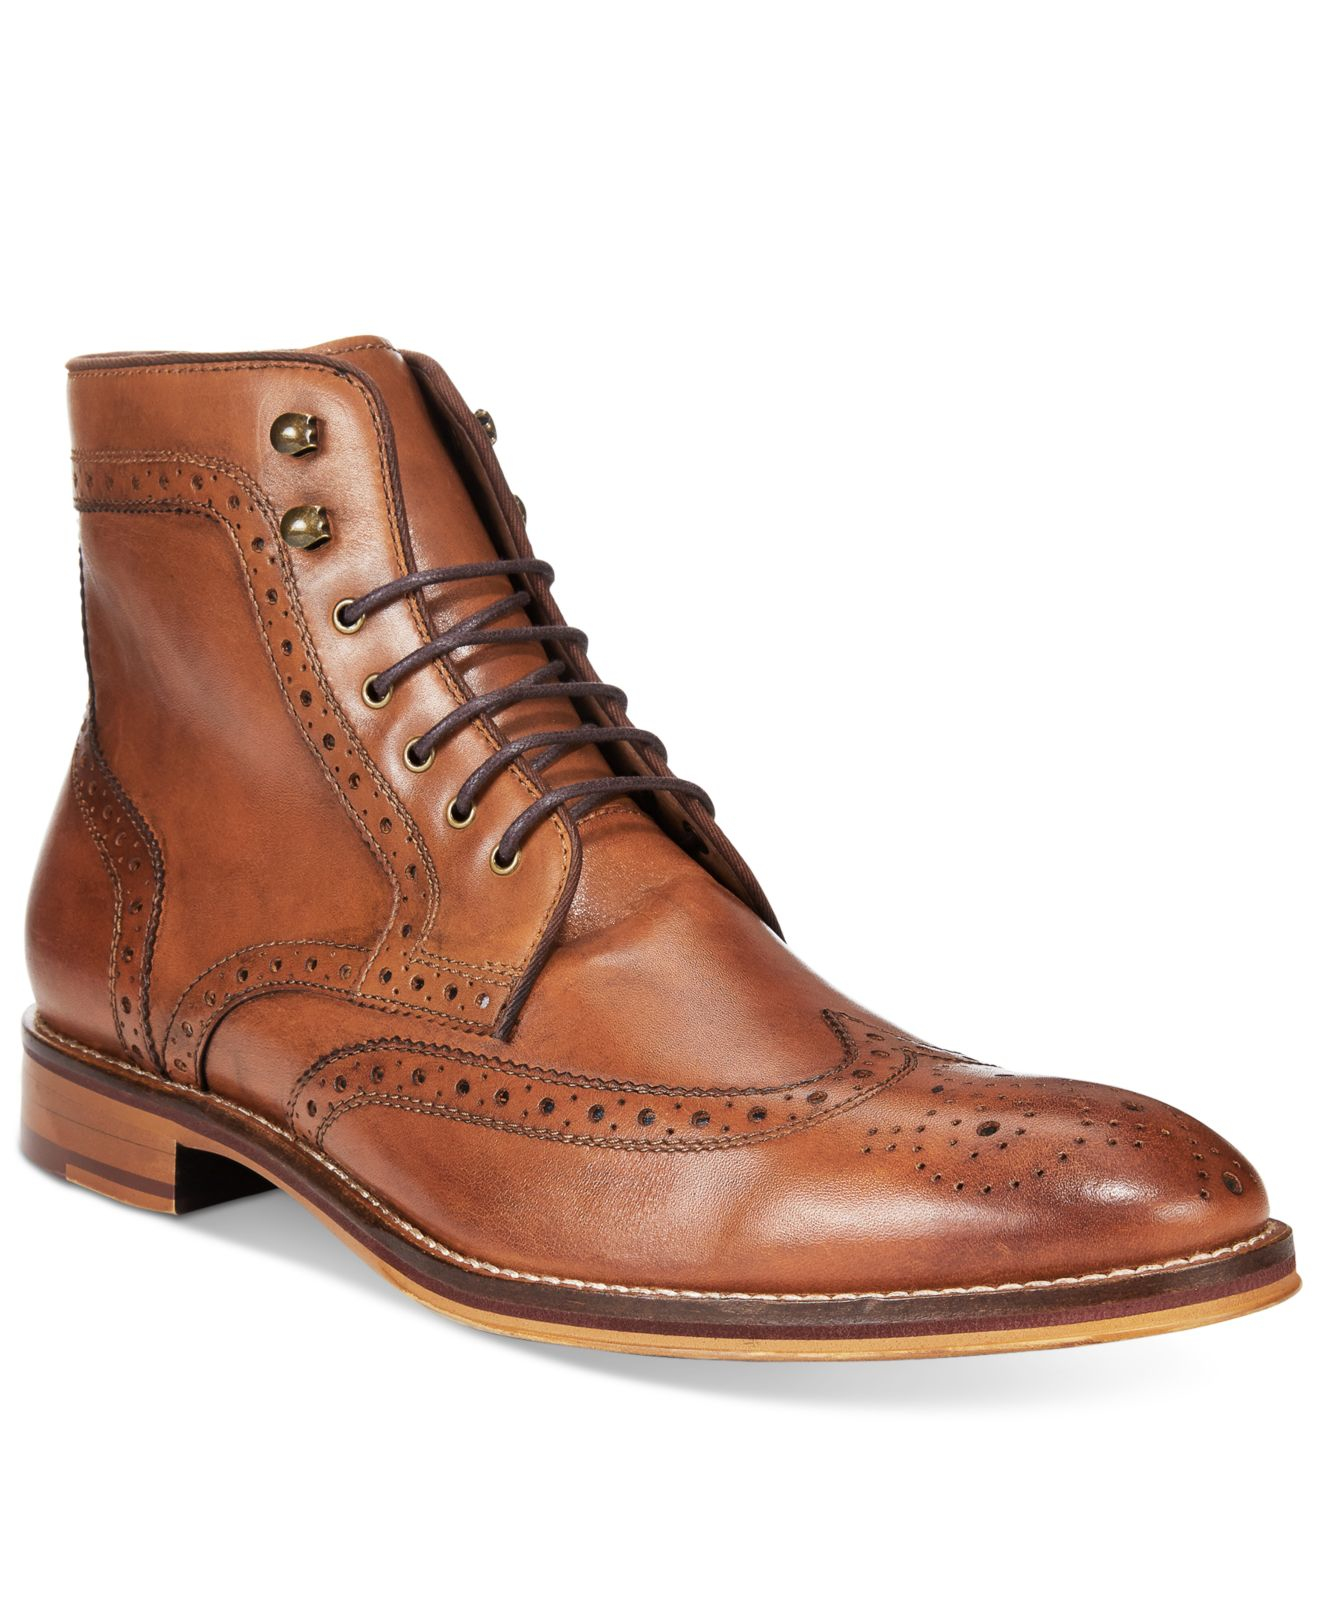 Johnston And Murphy Mens Shoes Macys